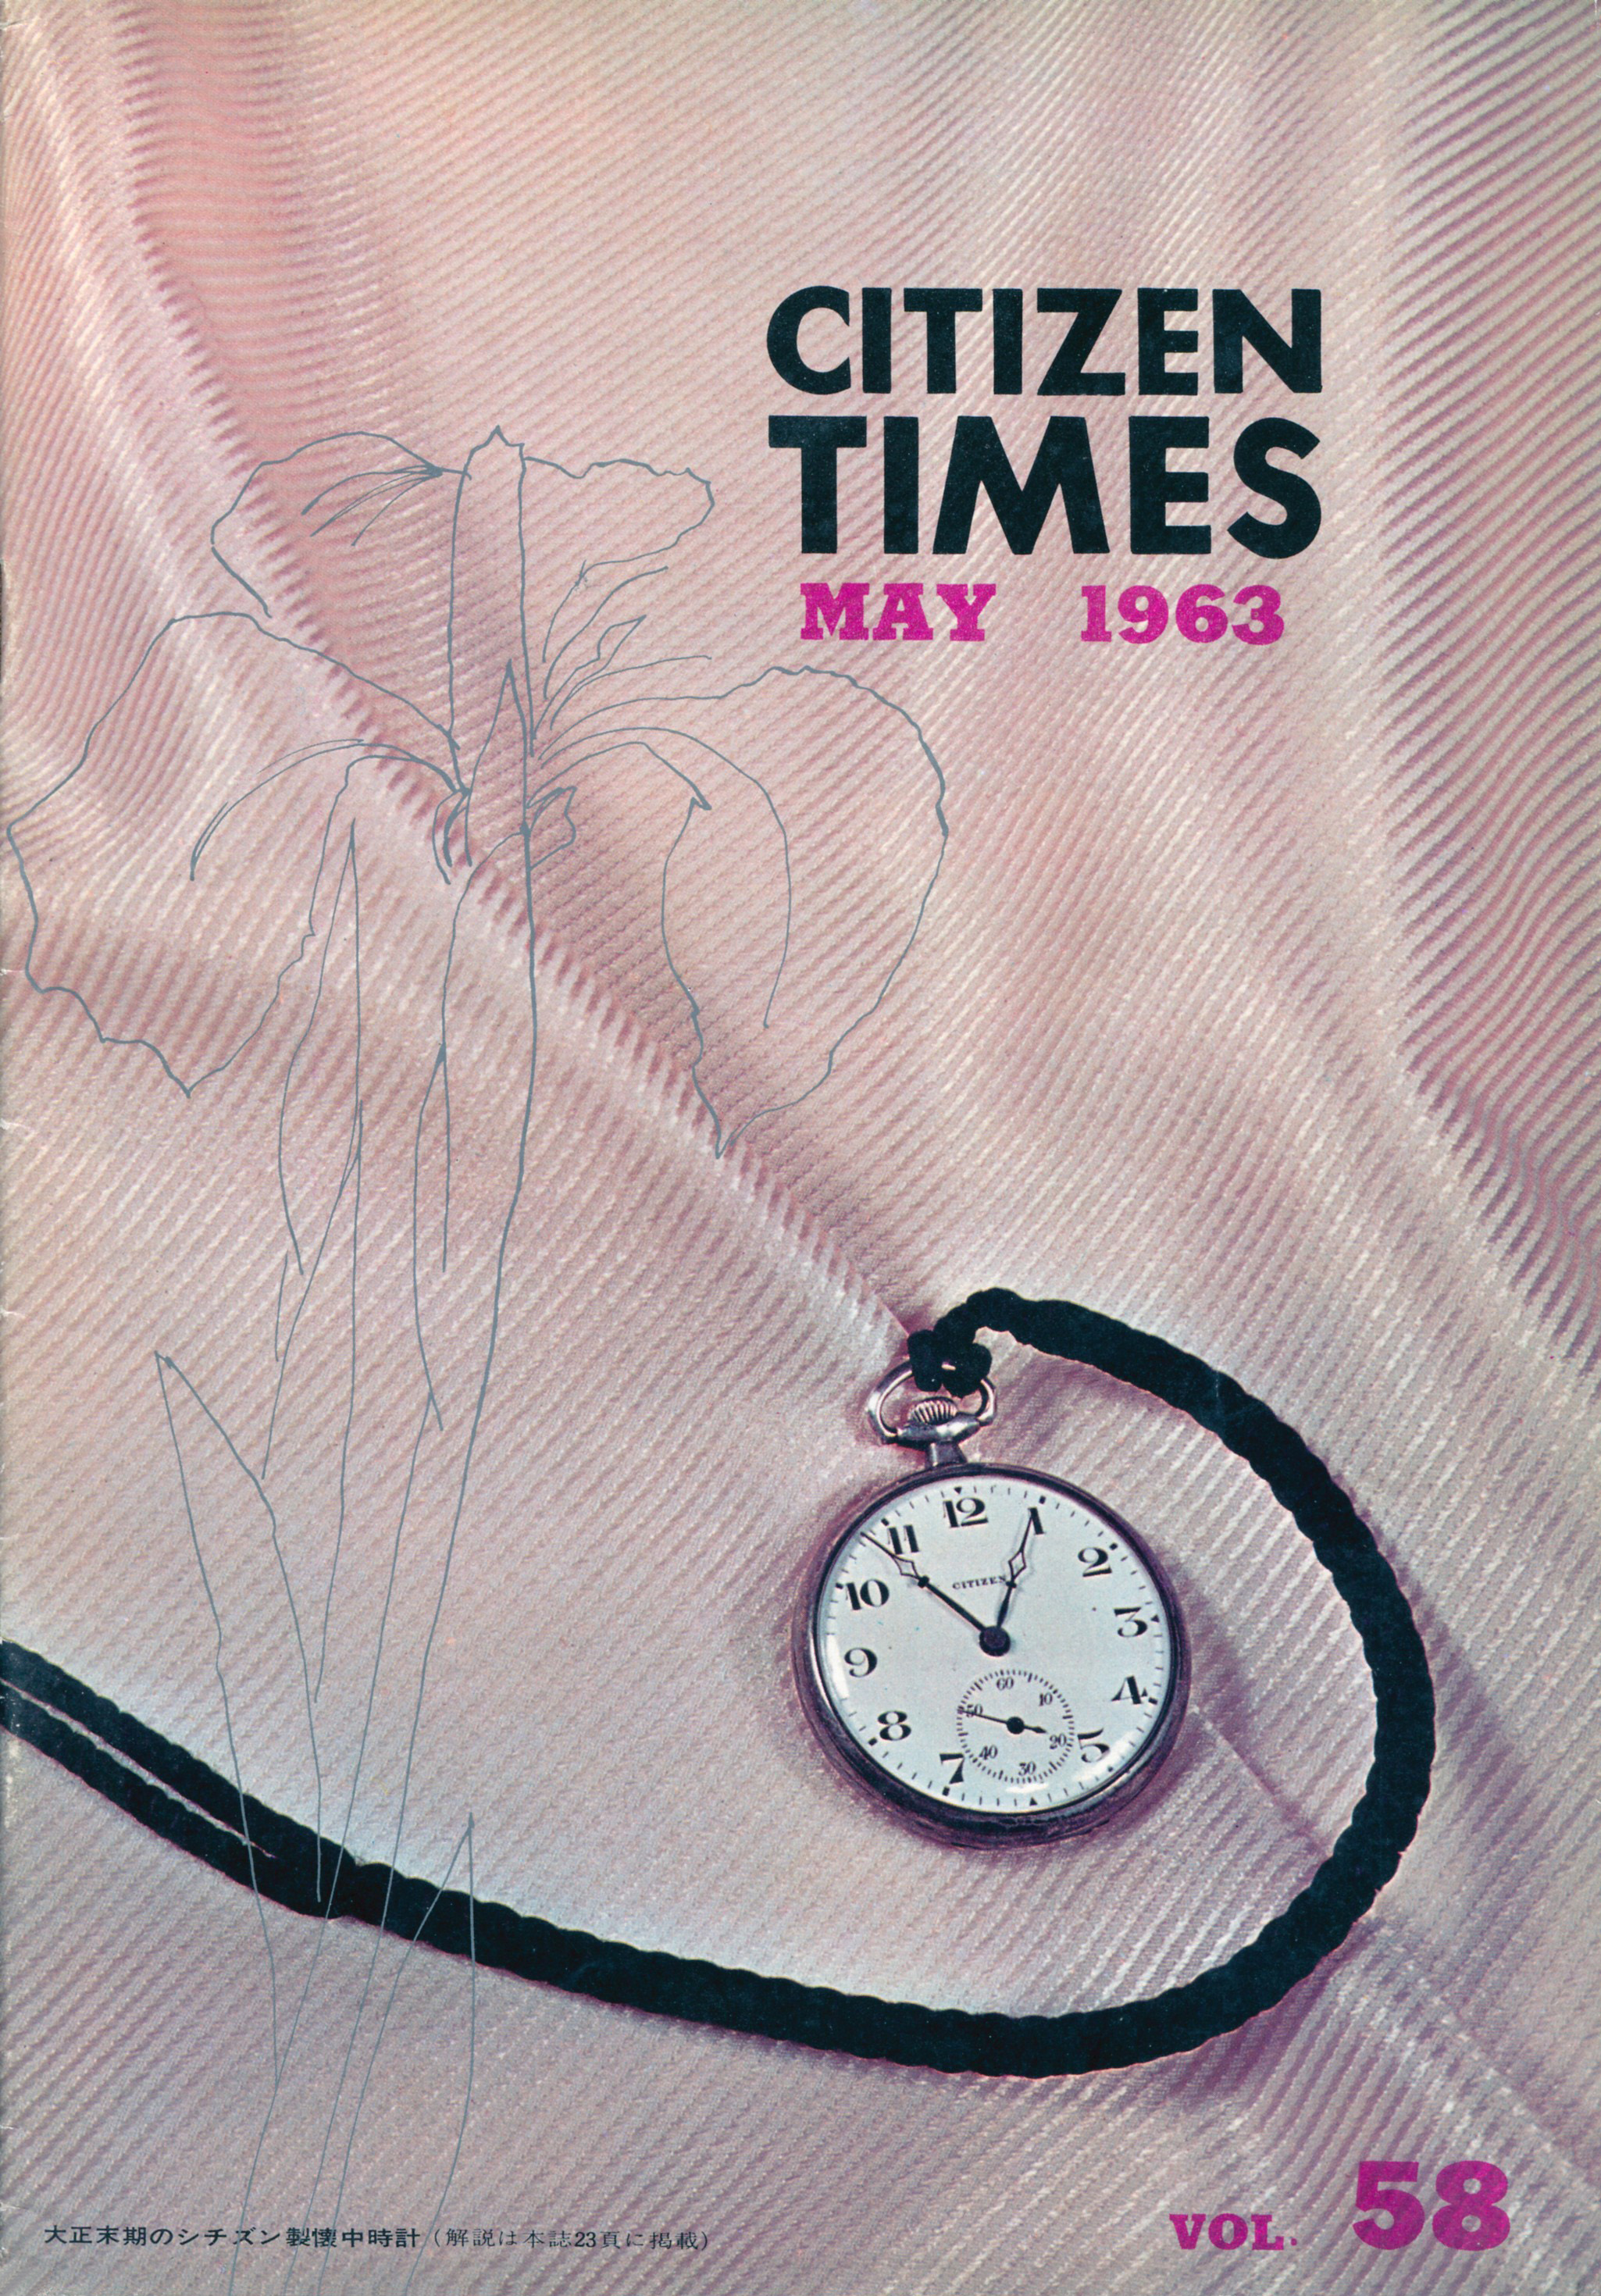 Citizen Times 1963 No. 58